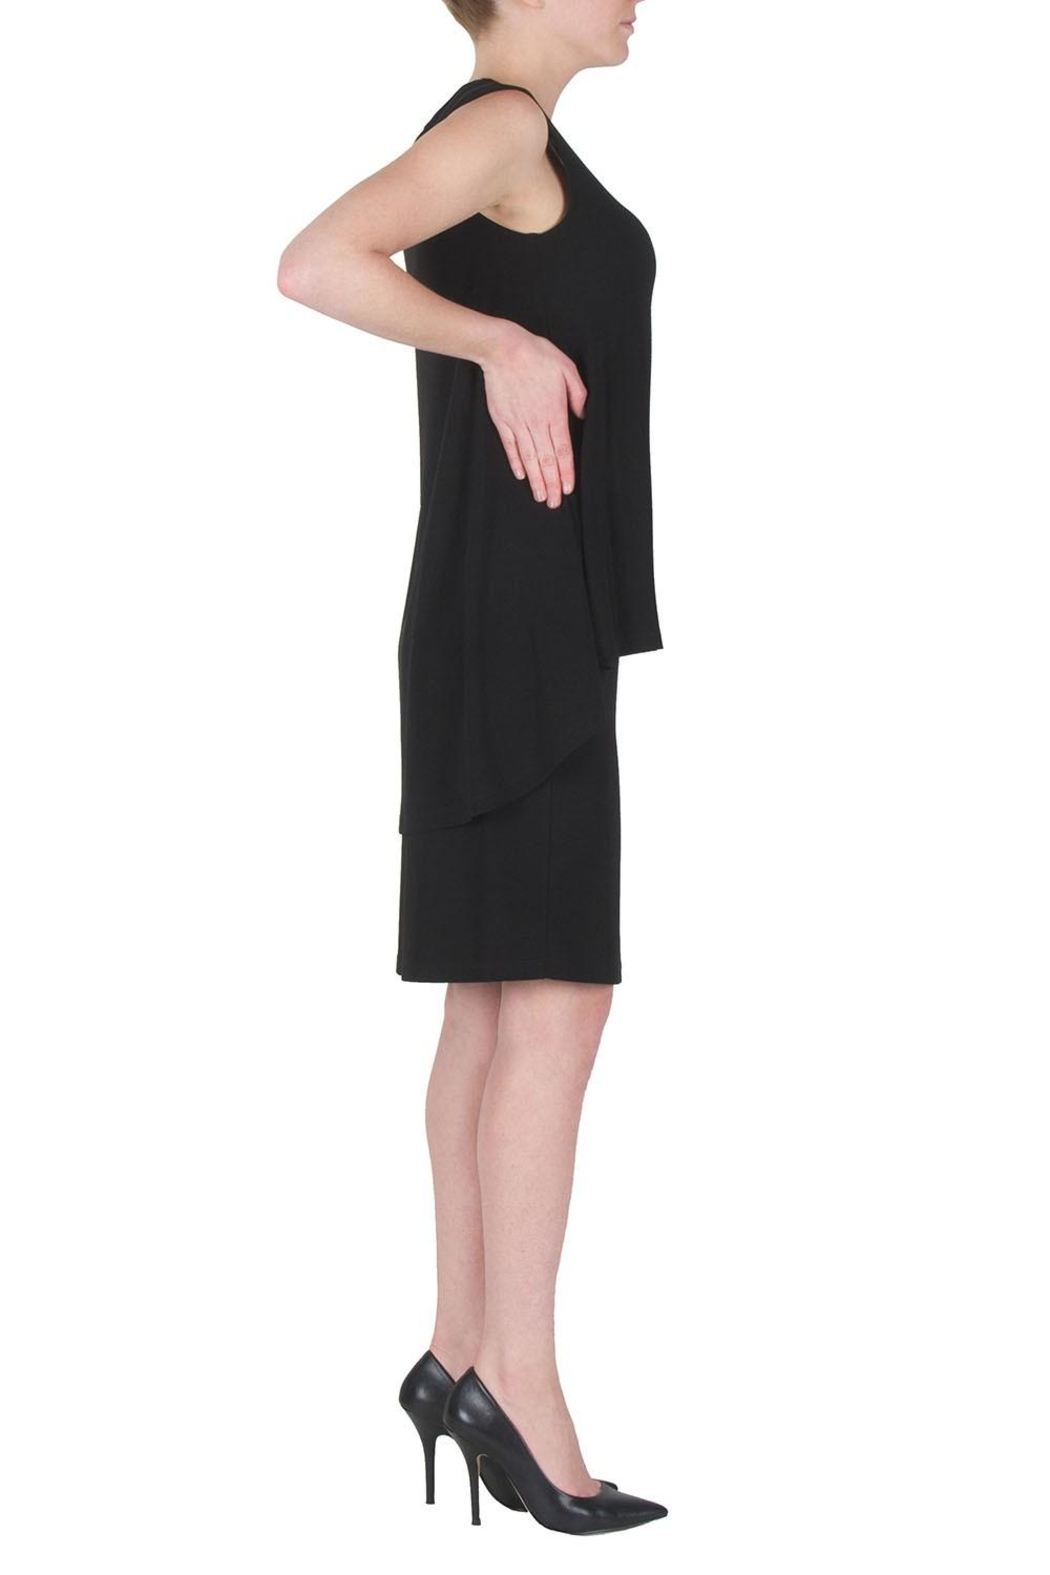 Joseph Ribkoff Draped Cocktail Dress - Front Full Image